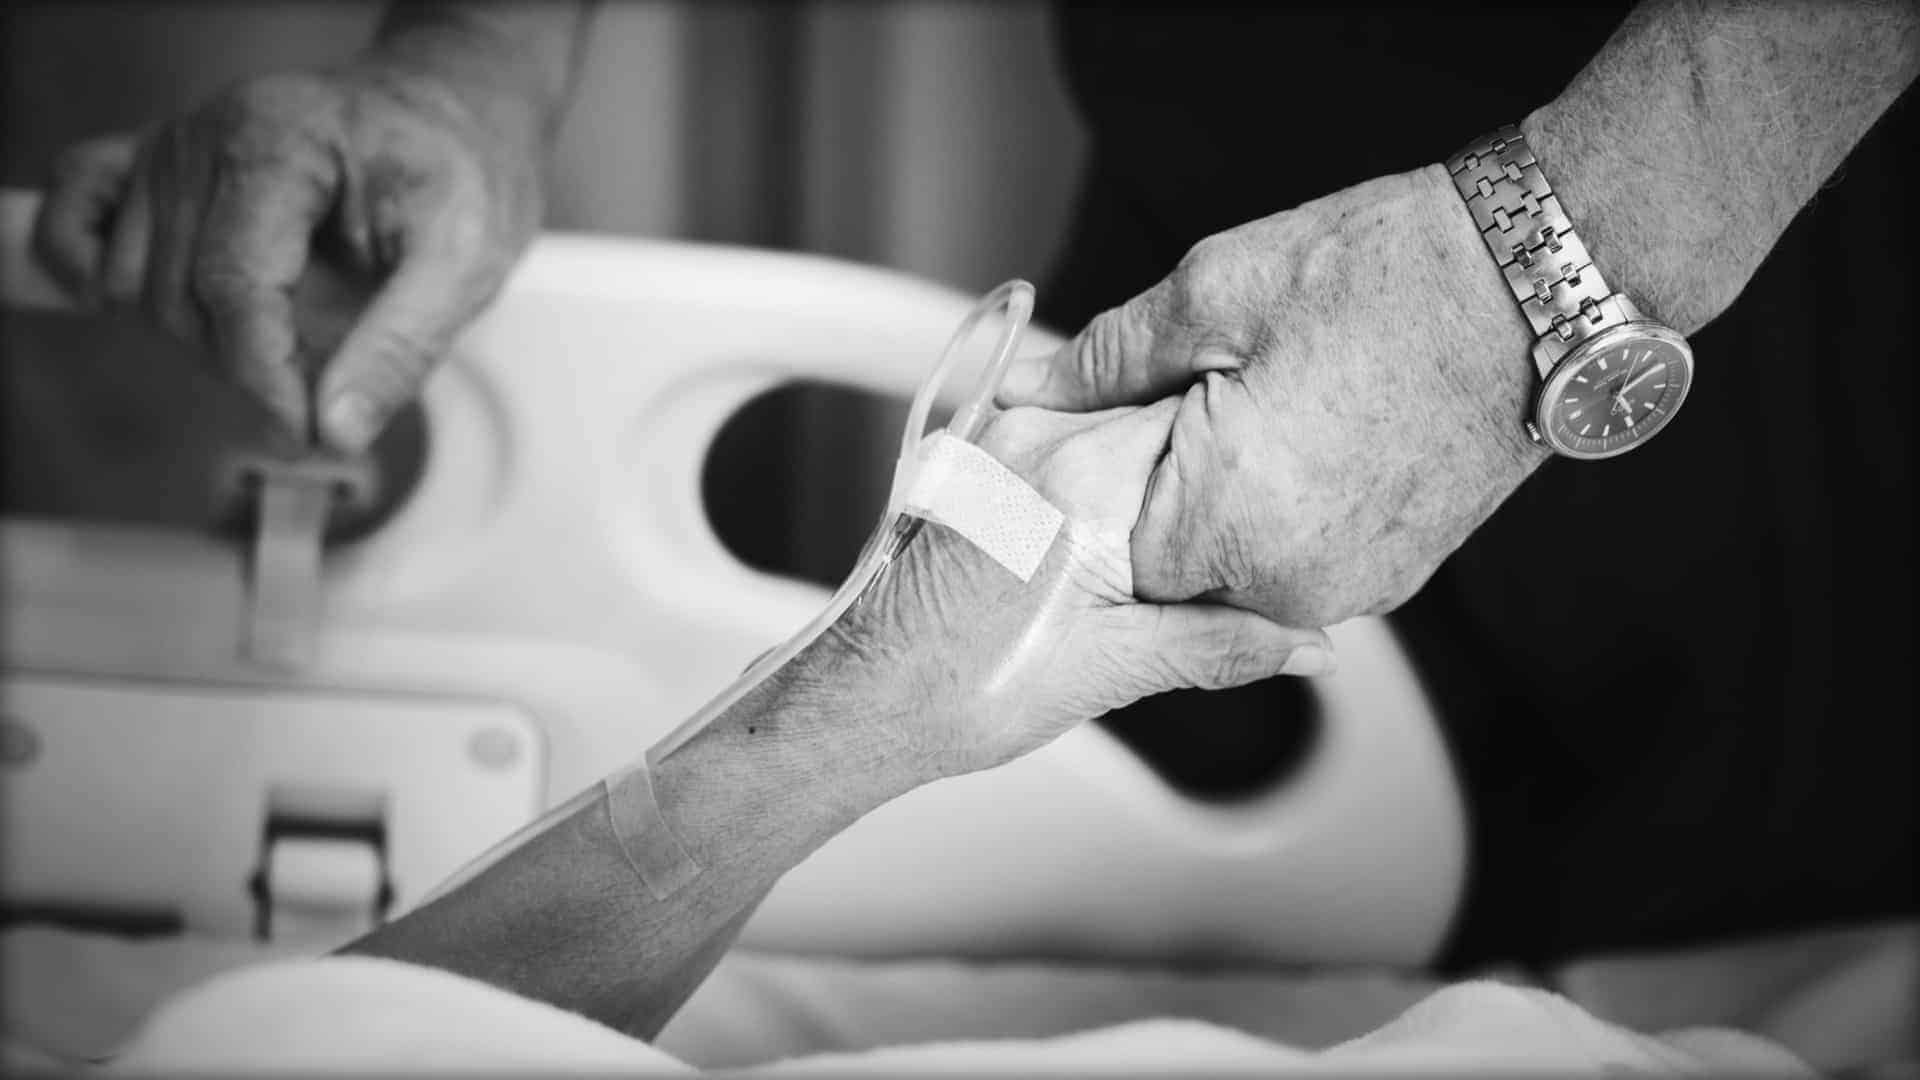 The image shows a close-up of hand. The hand is shown against the back drop of a hospital bed and has a drip needle inserted into the wrist. A caring hand and arm is seen holding the persons hand and giving comfort.